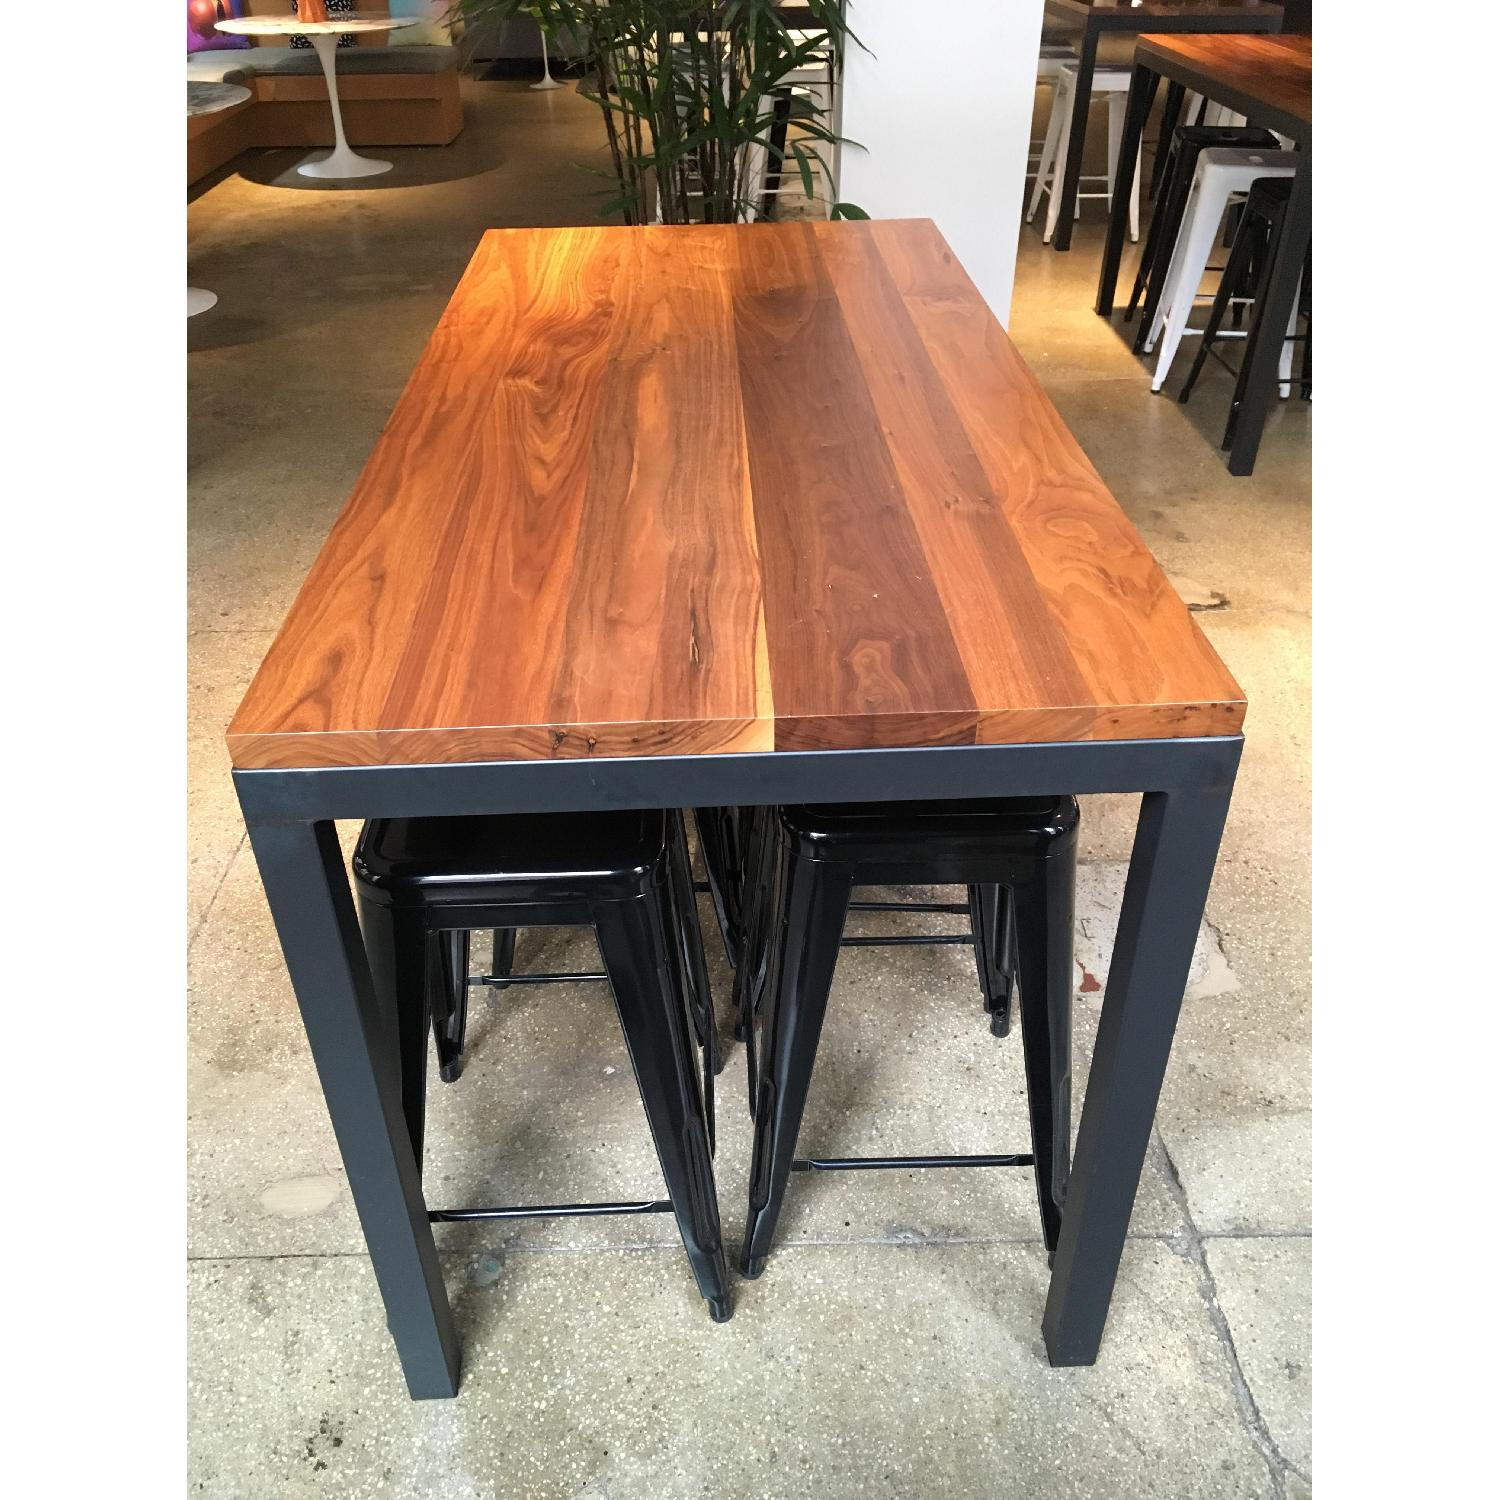 Crate & Barrel Parsons Walnut Counter Table w/ Metal Base-2